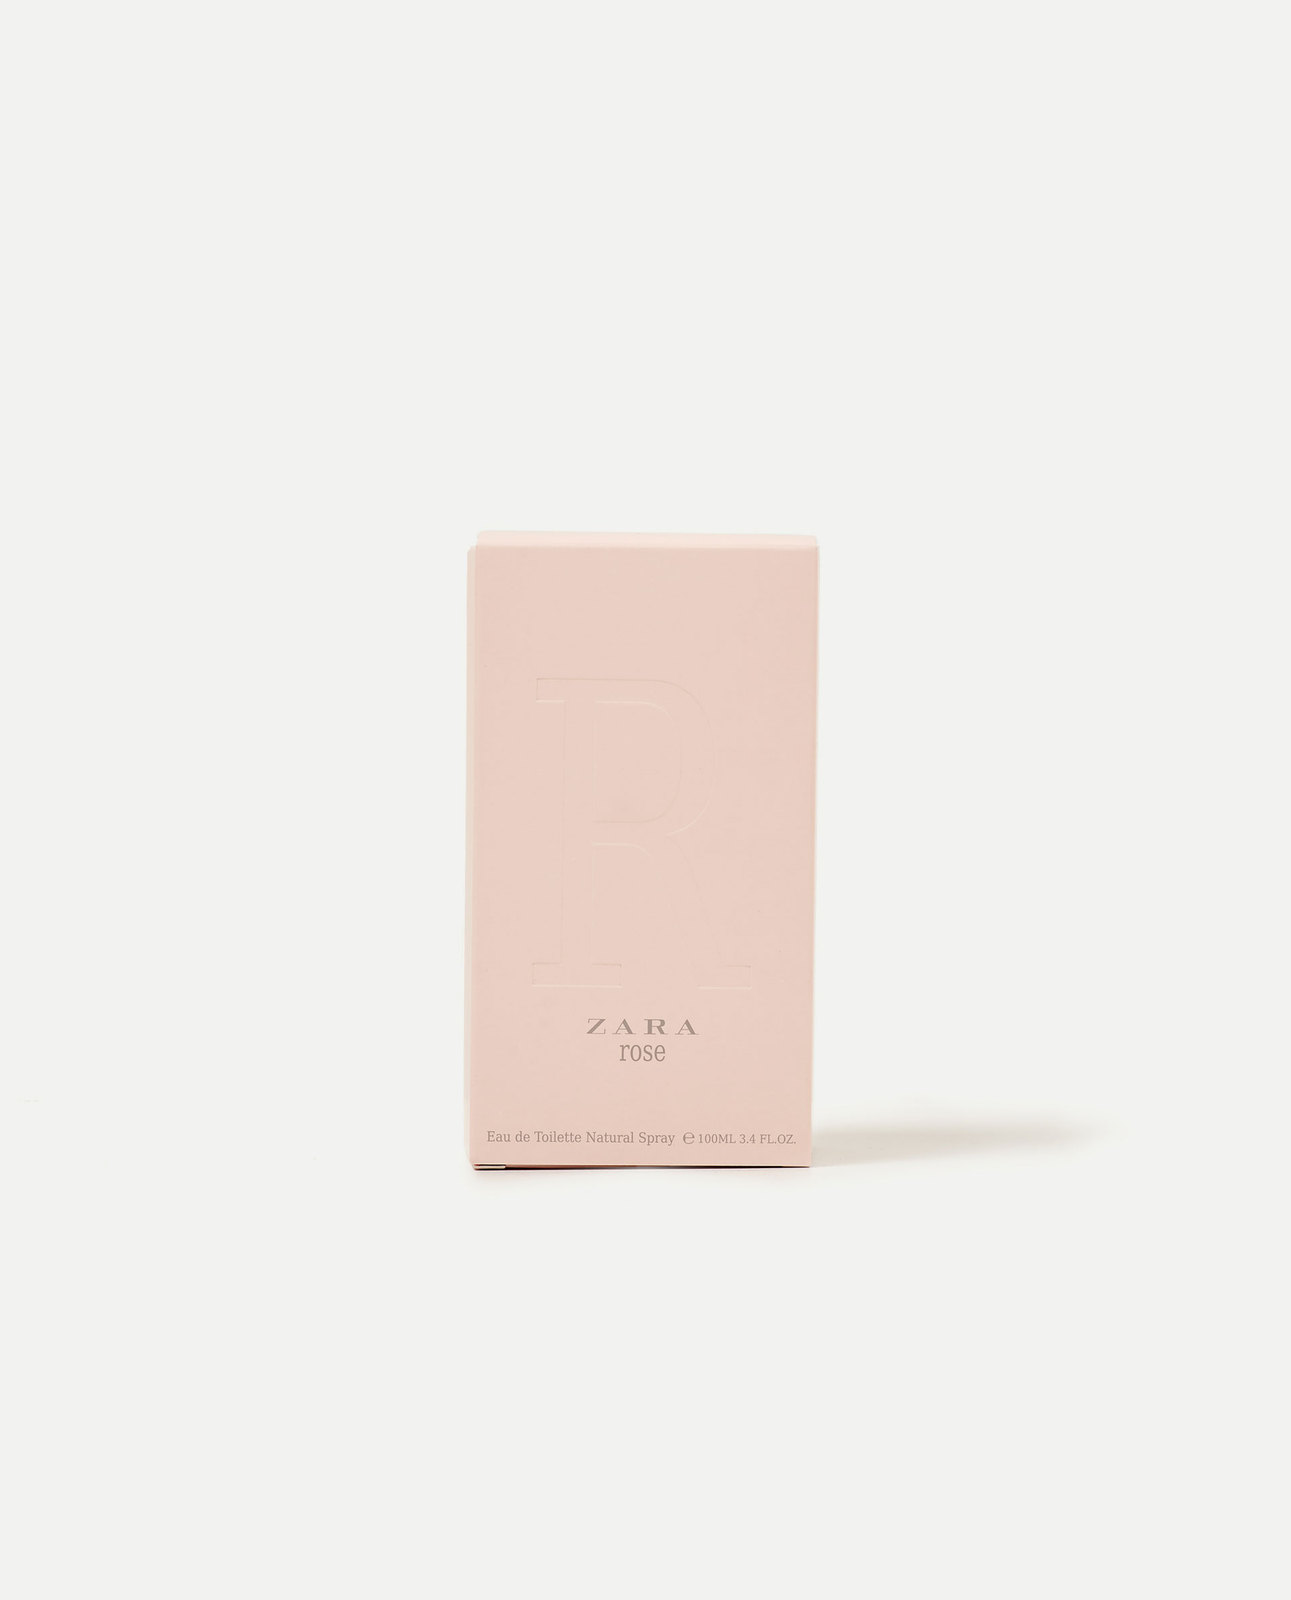 ZARA WOMAN FRAGRANCES – ROSE - EAU DE TOILETTE 100ml/ 3.4oz